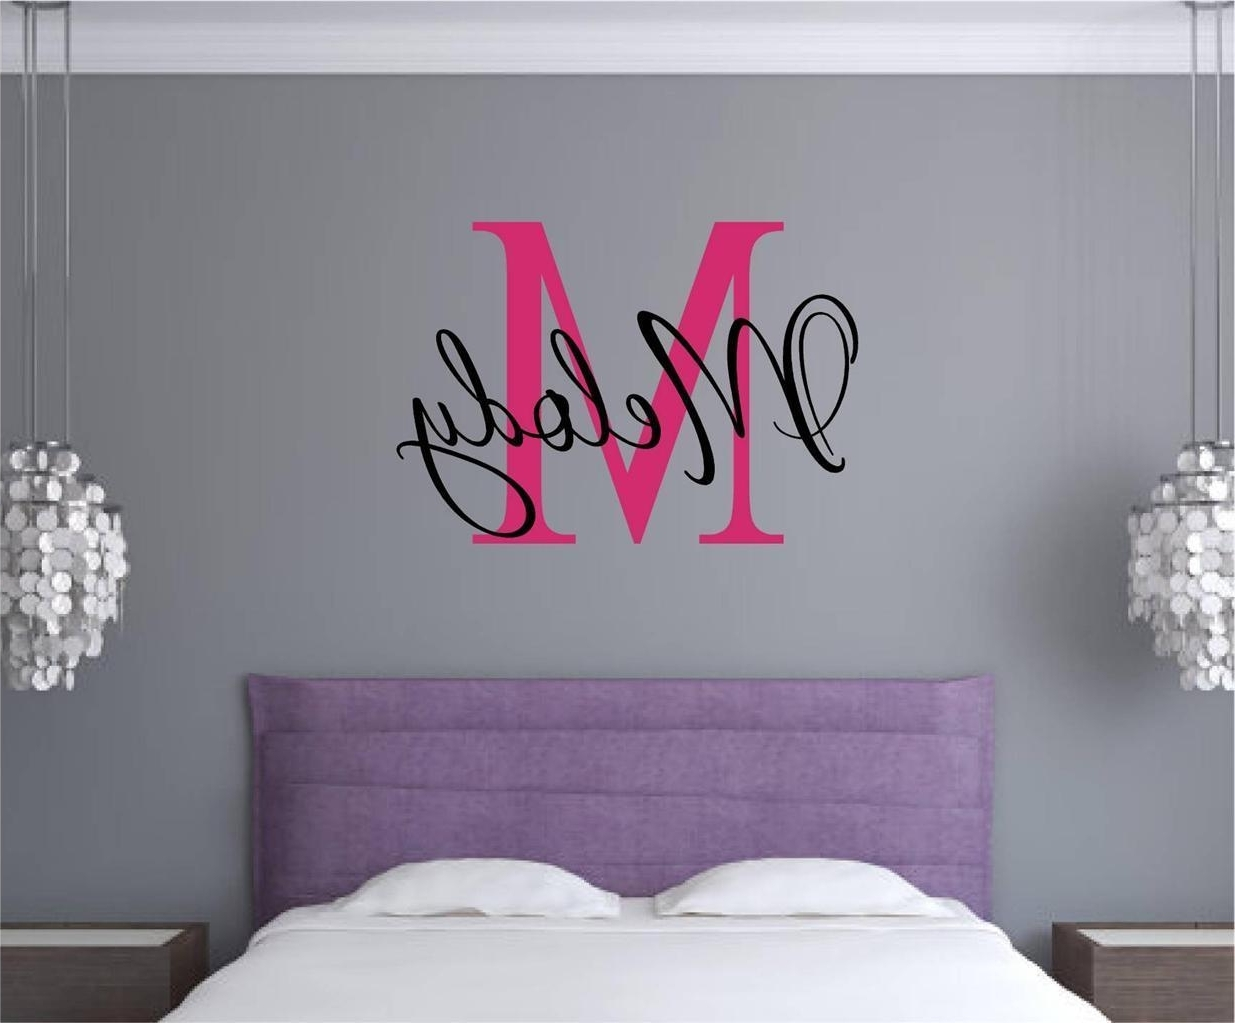 Most Recent Johannesburg Canvas Wall Art Intended For Wall Art Designs: Name Wall Art Custom Monogram Name Vinyl Decal (View 12 of 15)